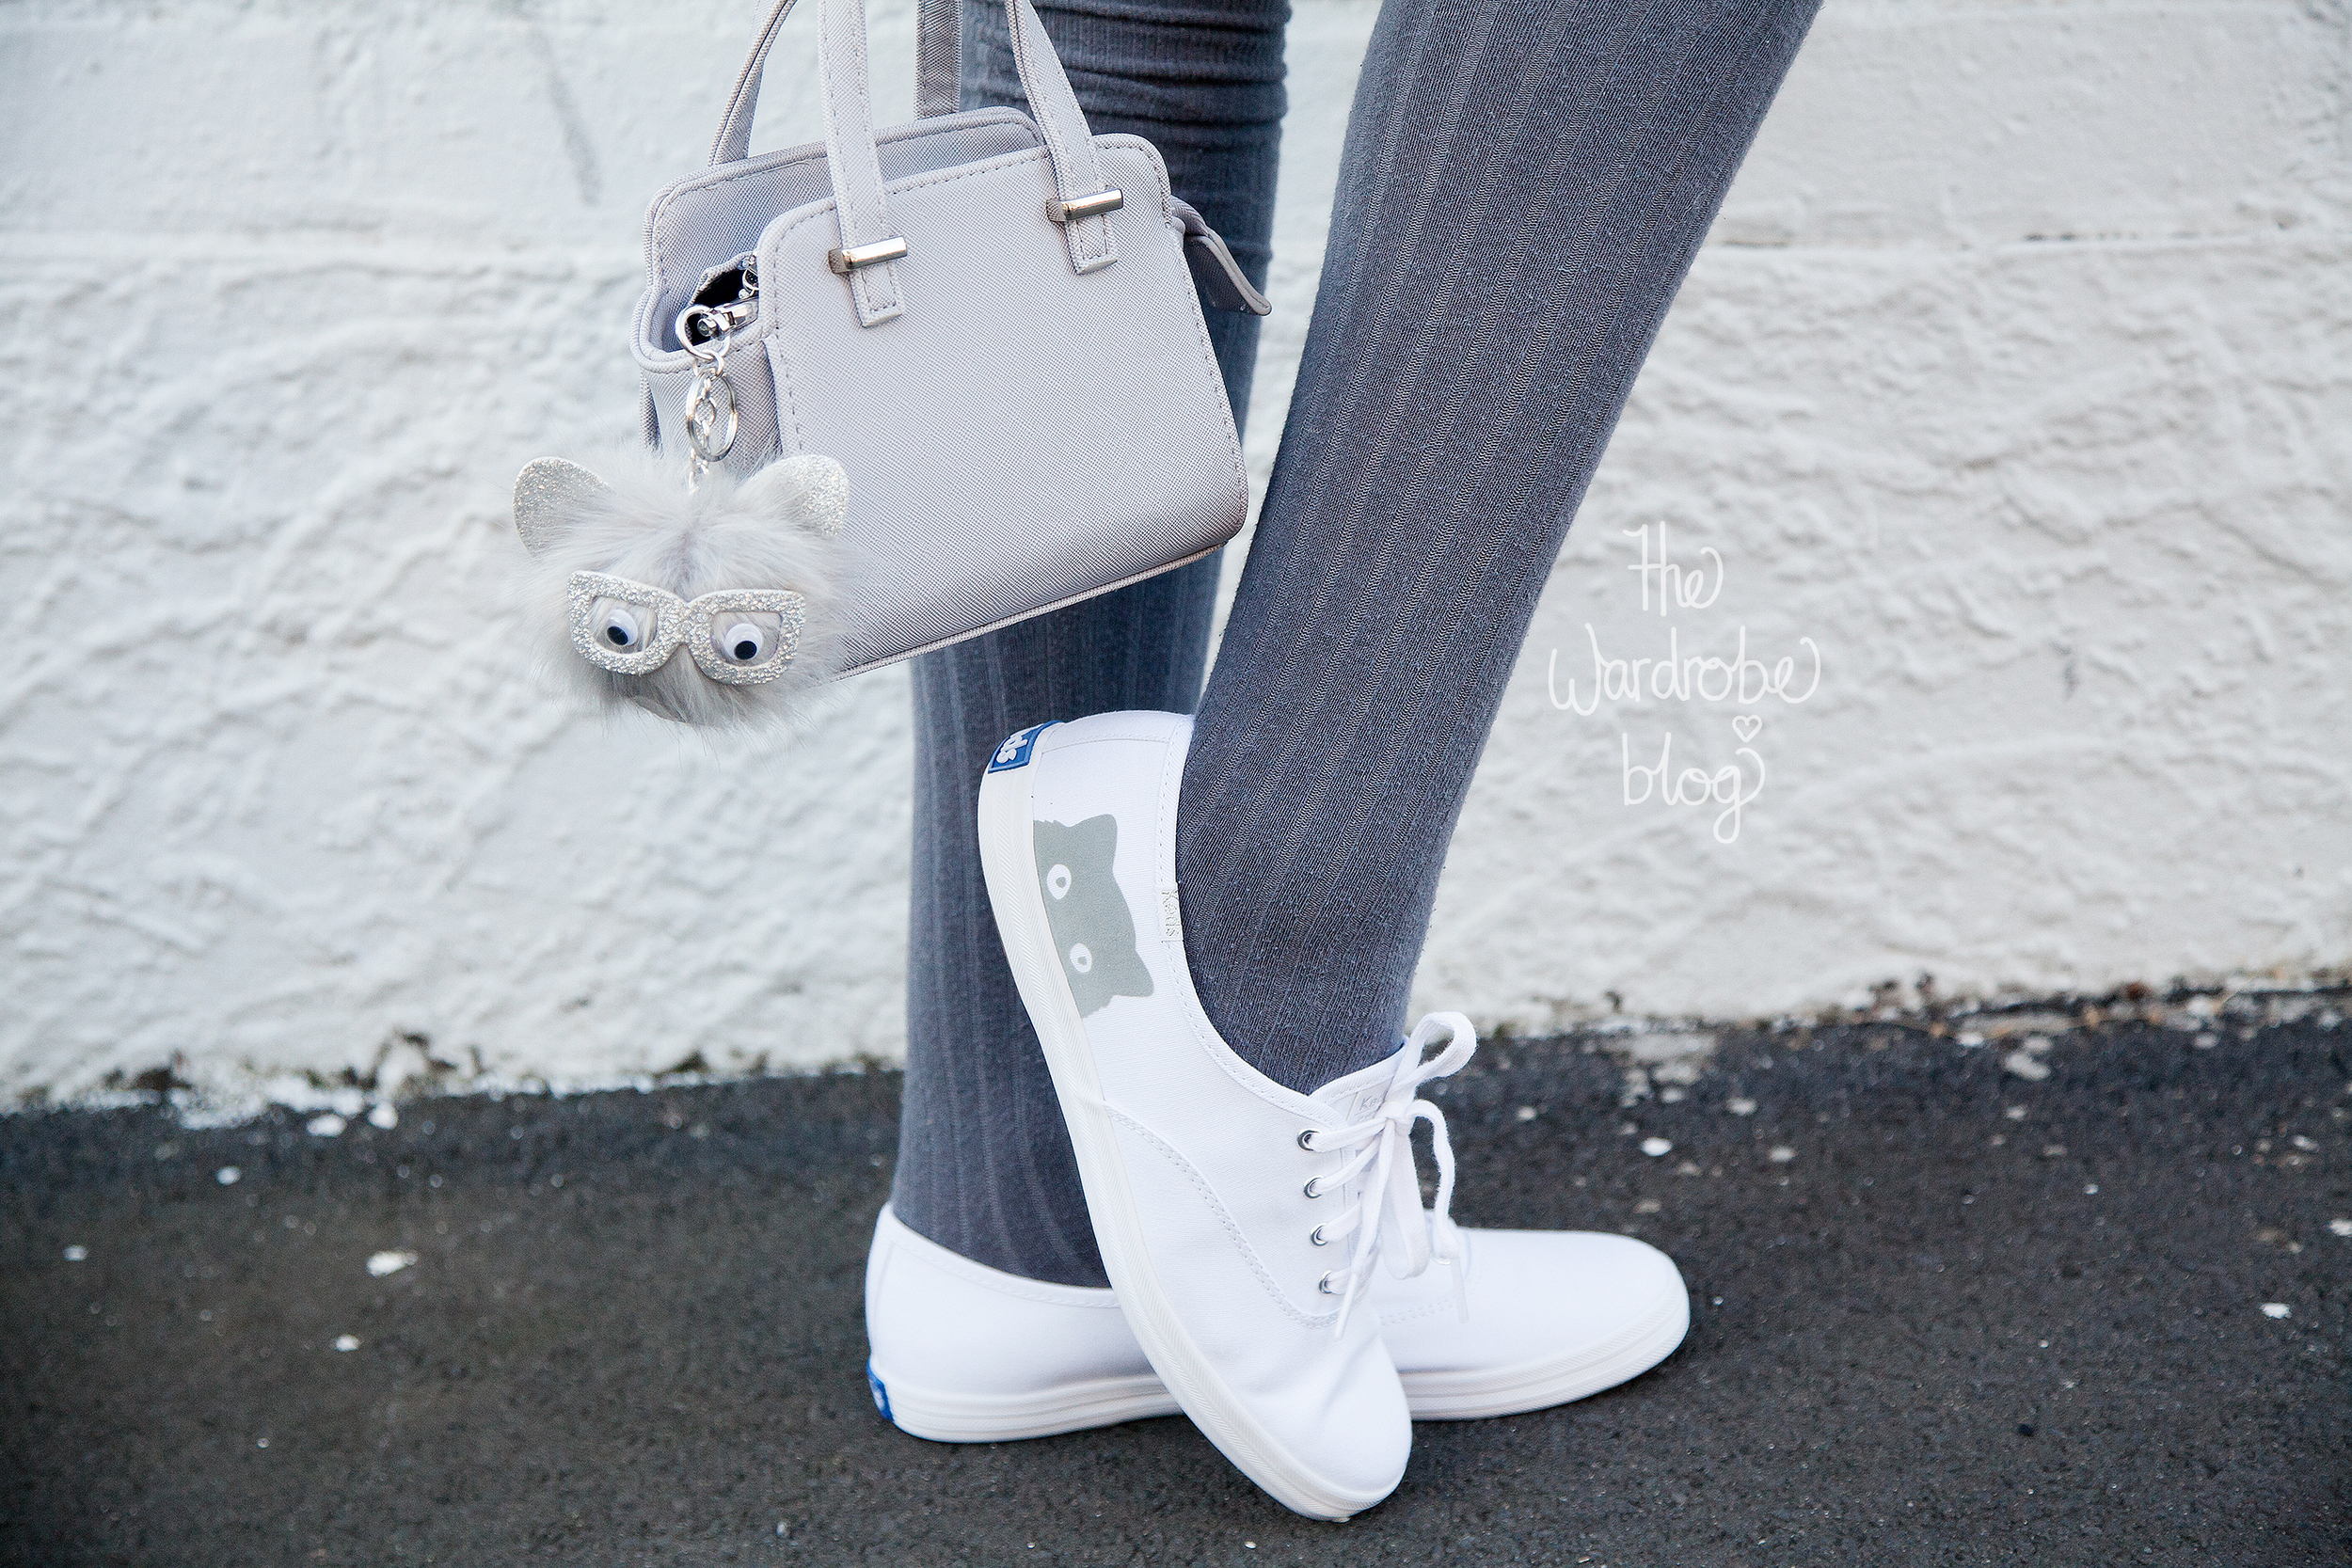 Bag + all accessories from Colette by Colette Hayman, Socks from Rubi Shoes, Shoes are Keds from Hannahs New Zealand.